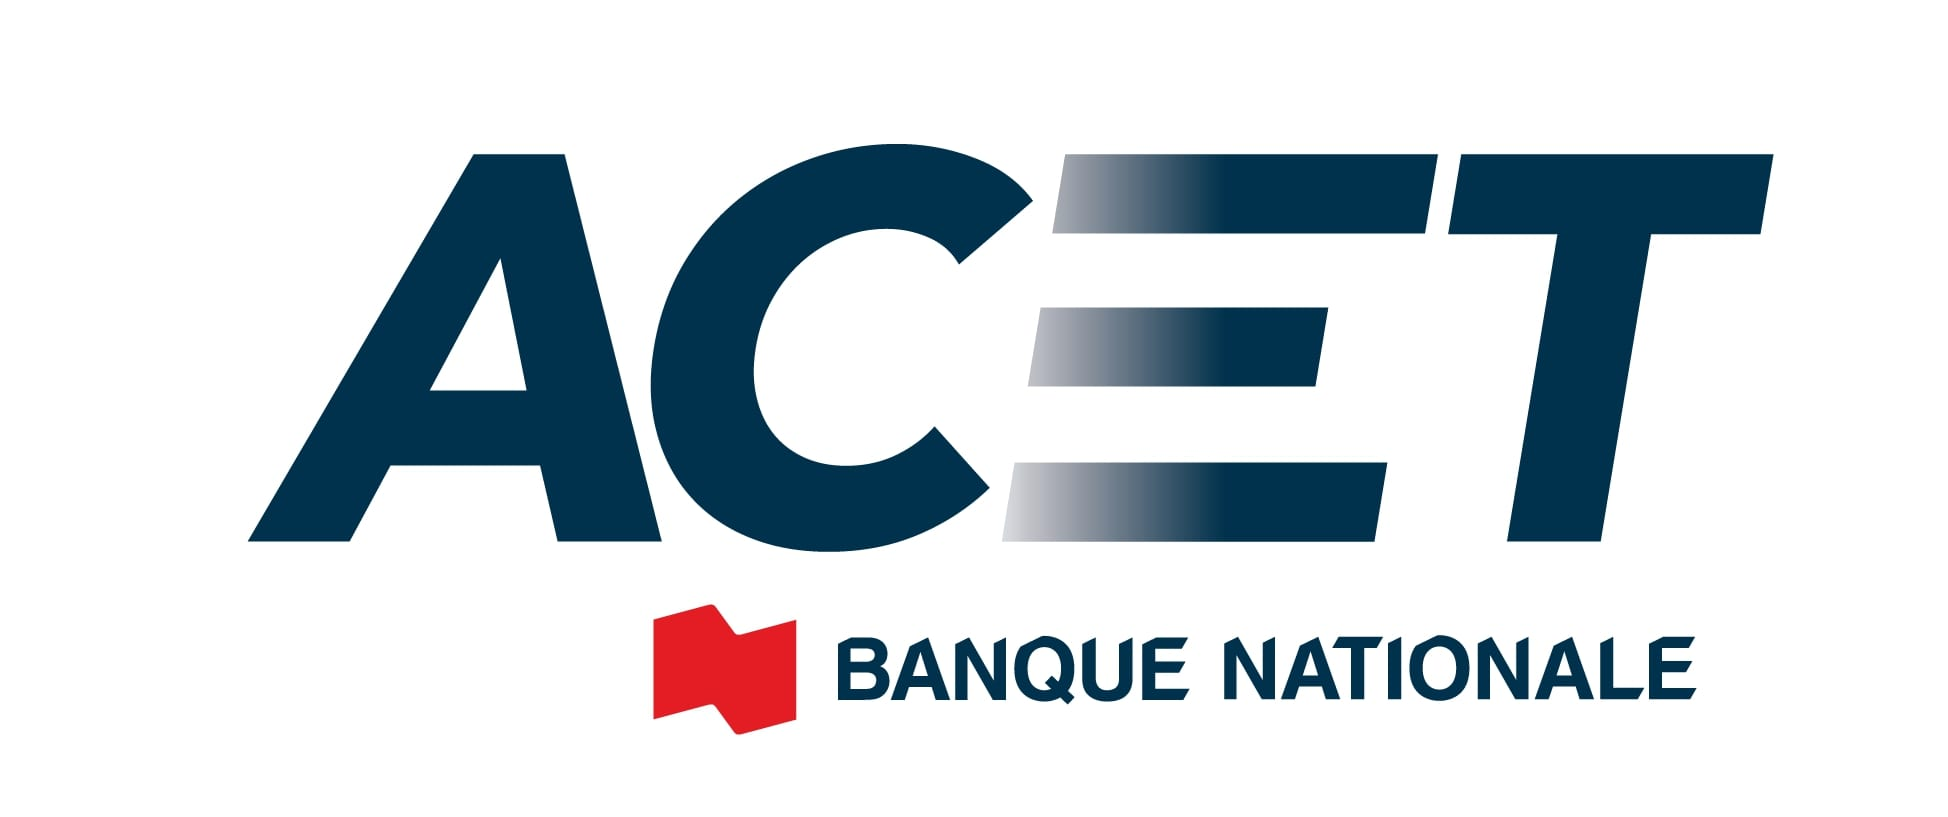 ACET - Banque nationale